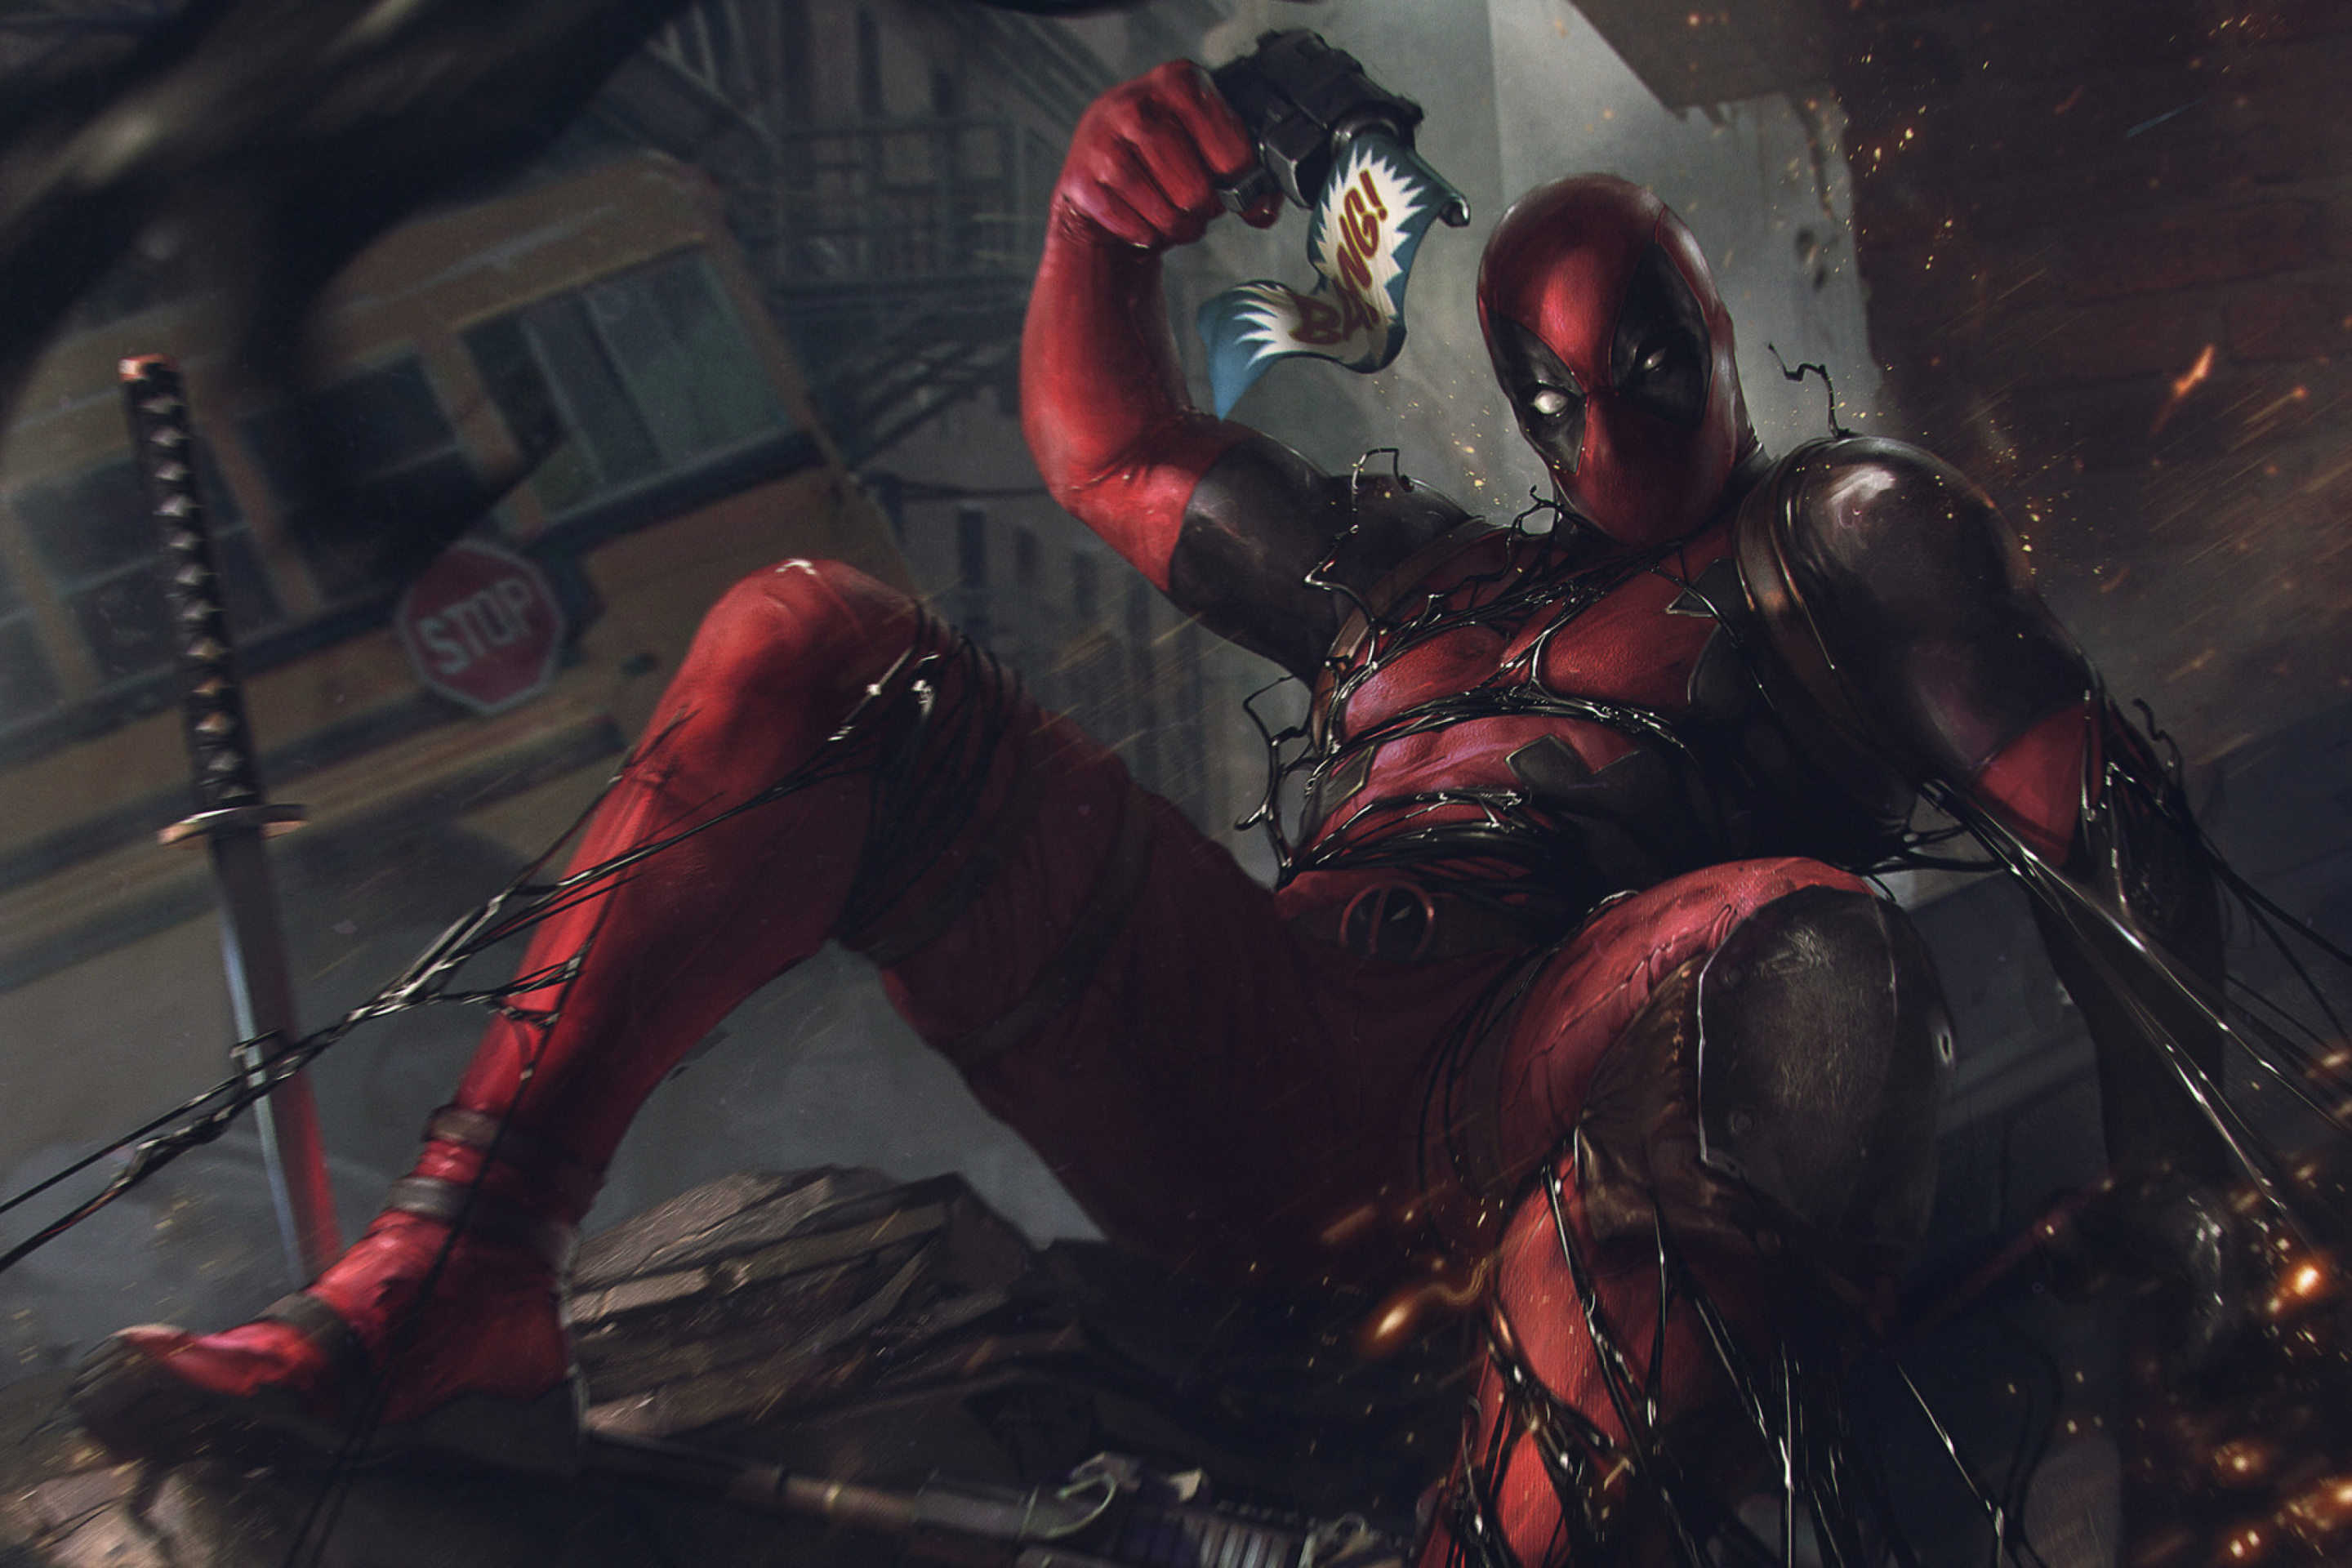 Das Deadpool Comics Wallpaper 2880x1920